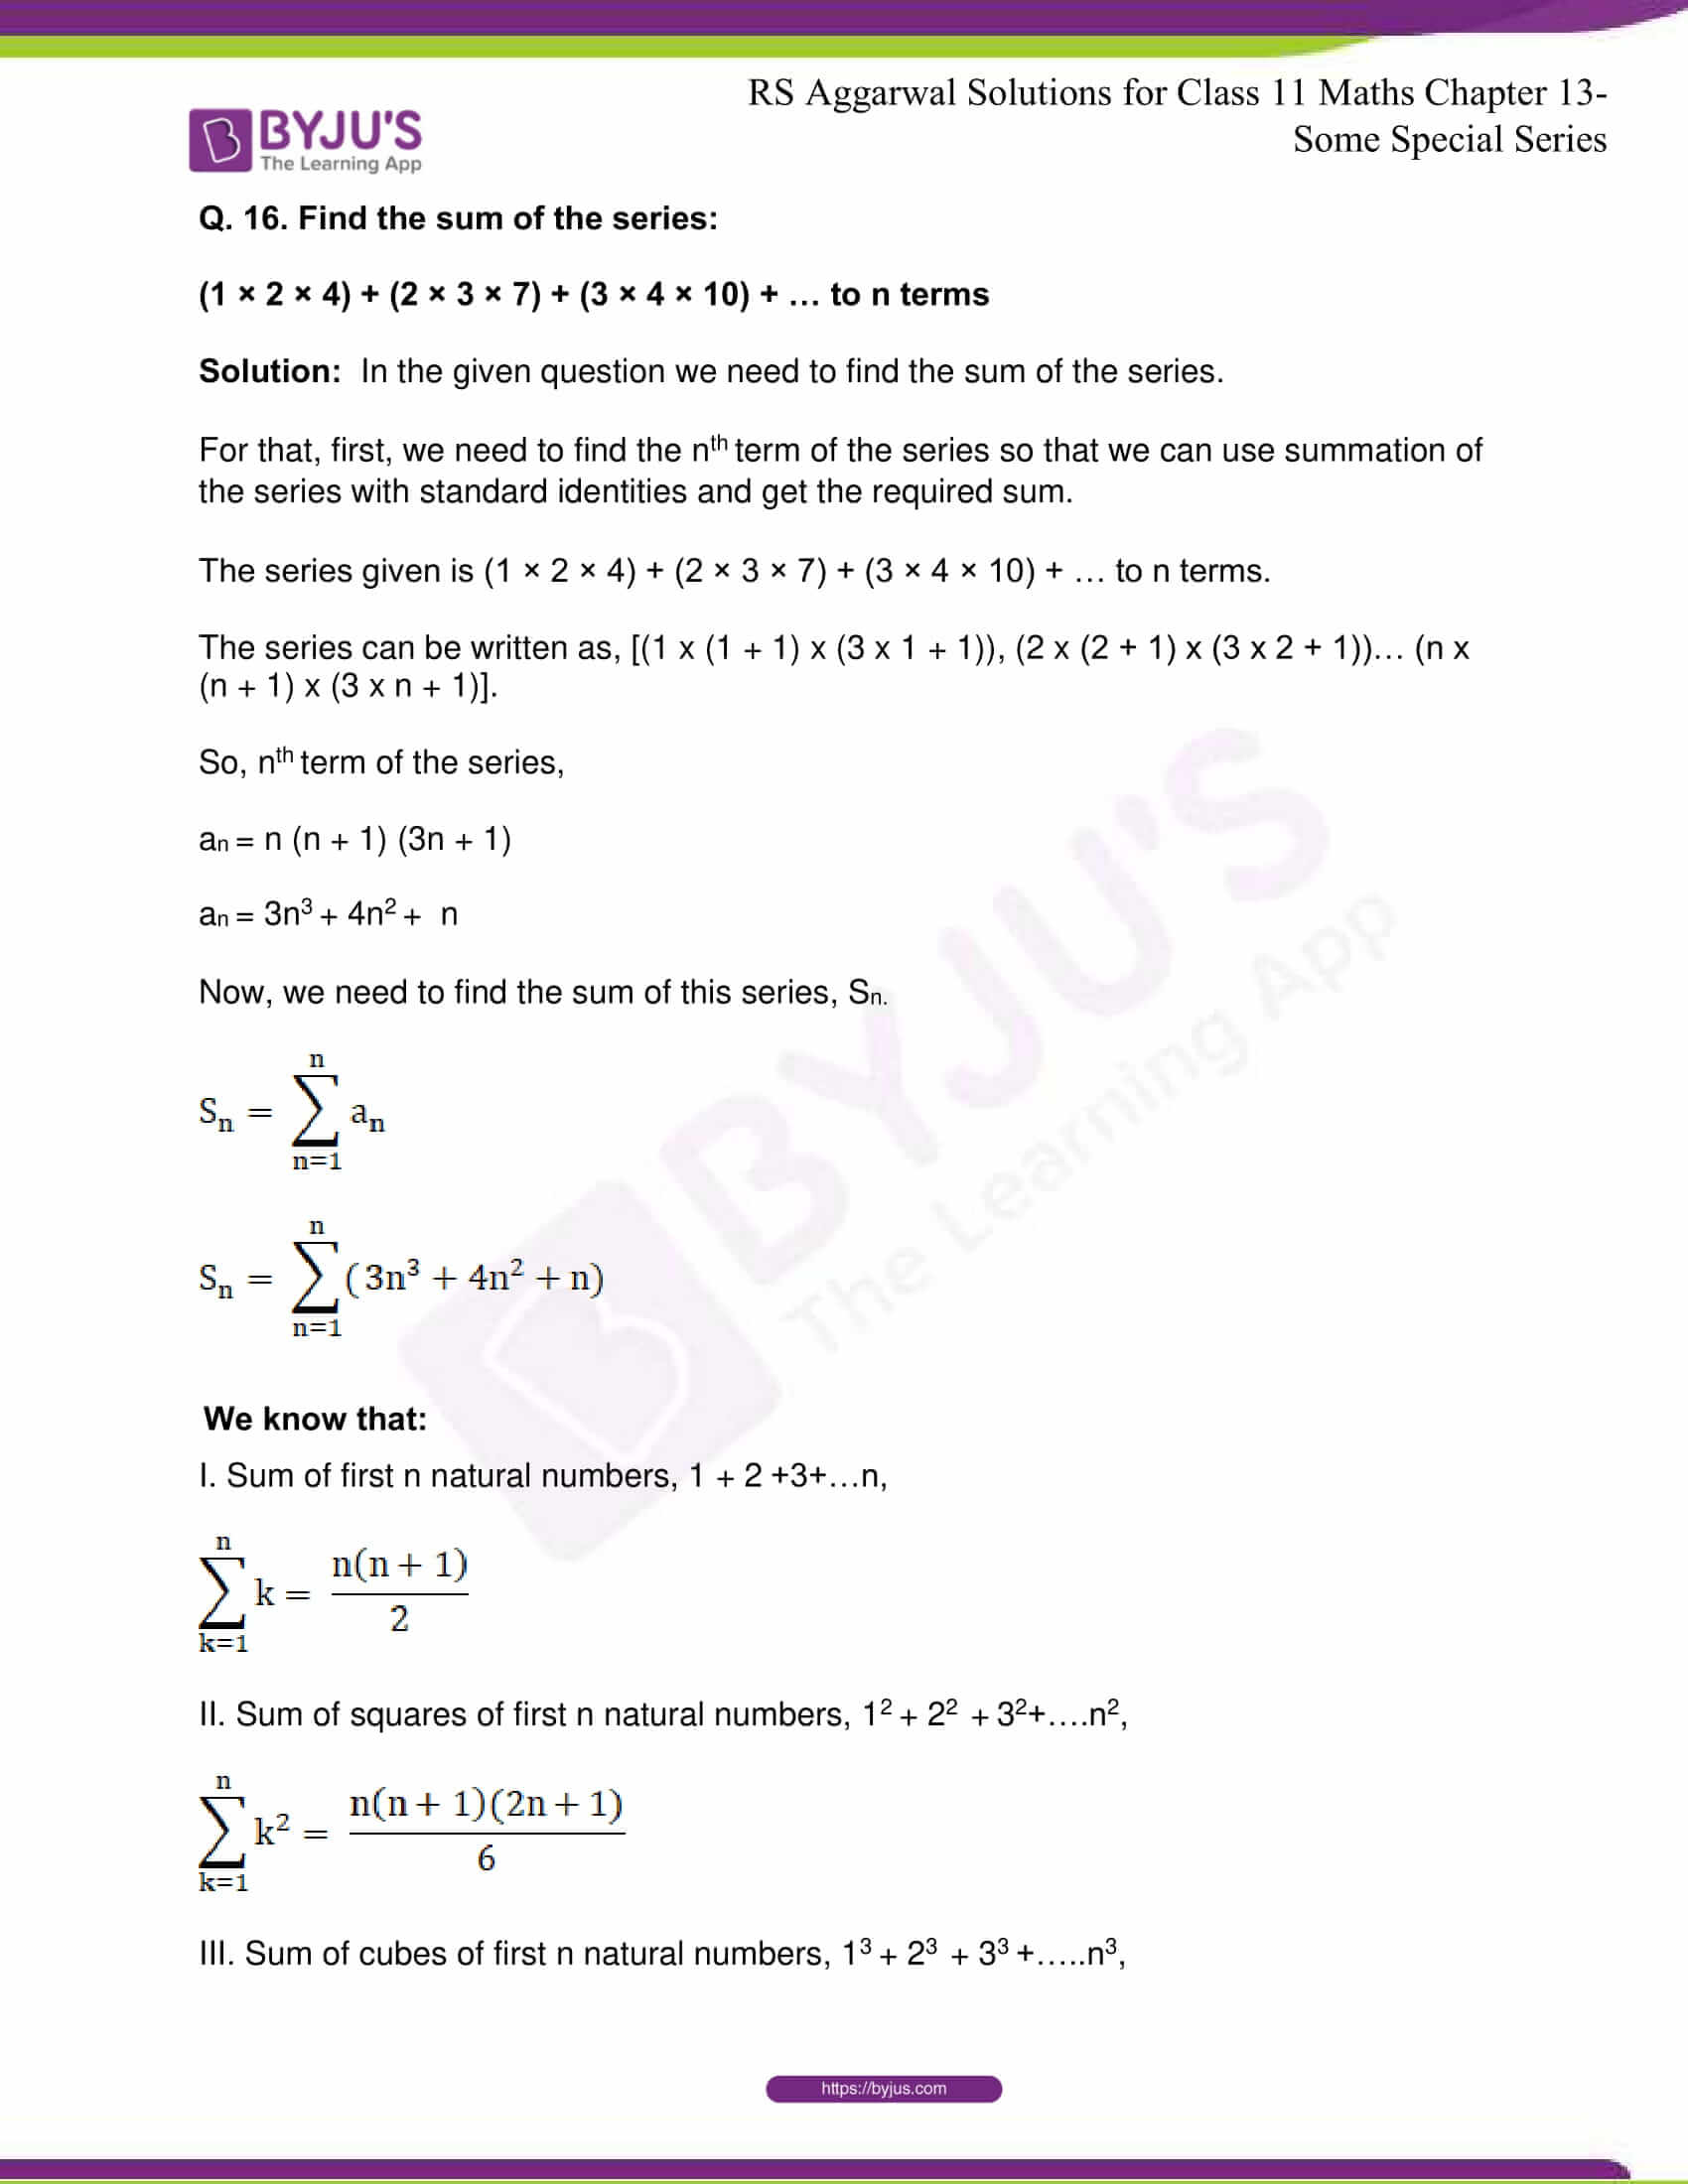 rsaggarwal solutions class 11 maths chapter 13 29